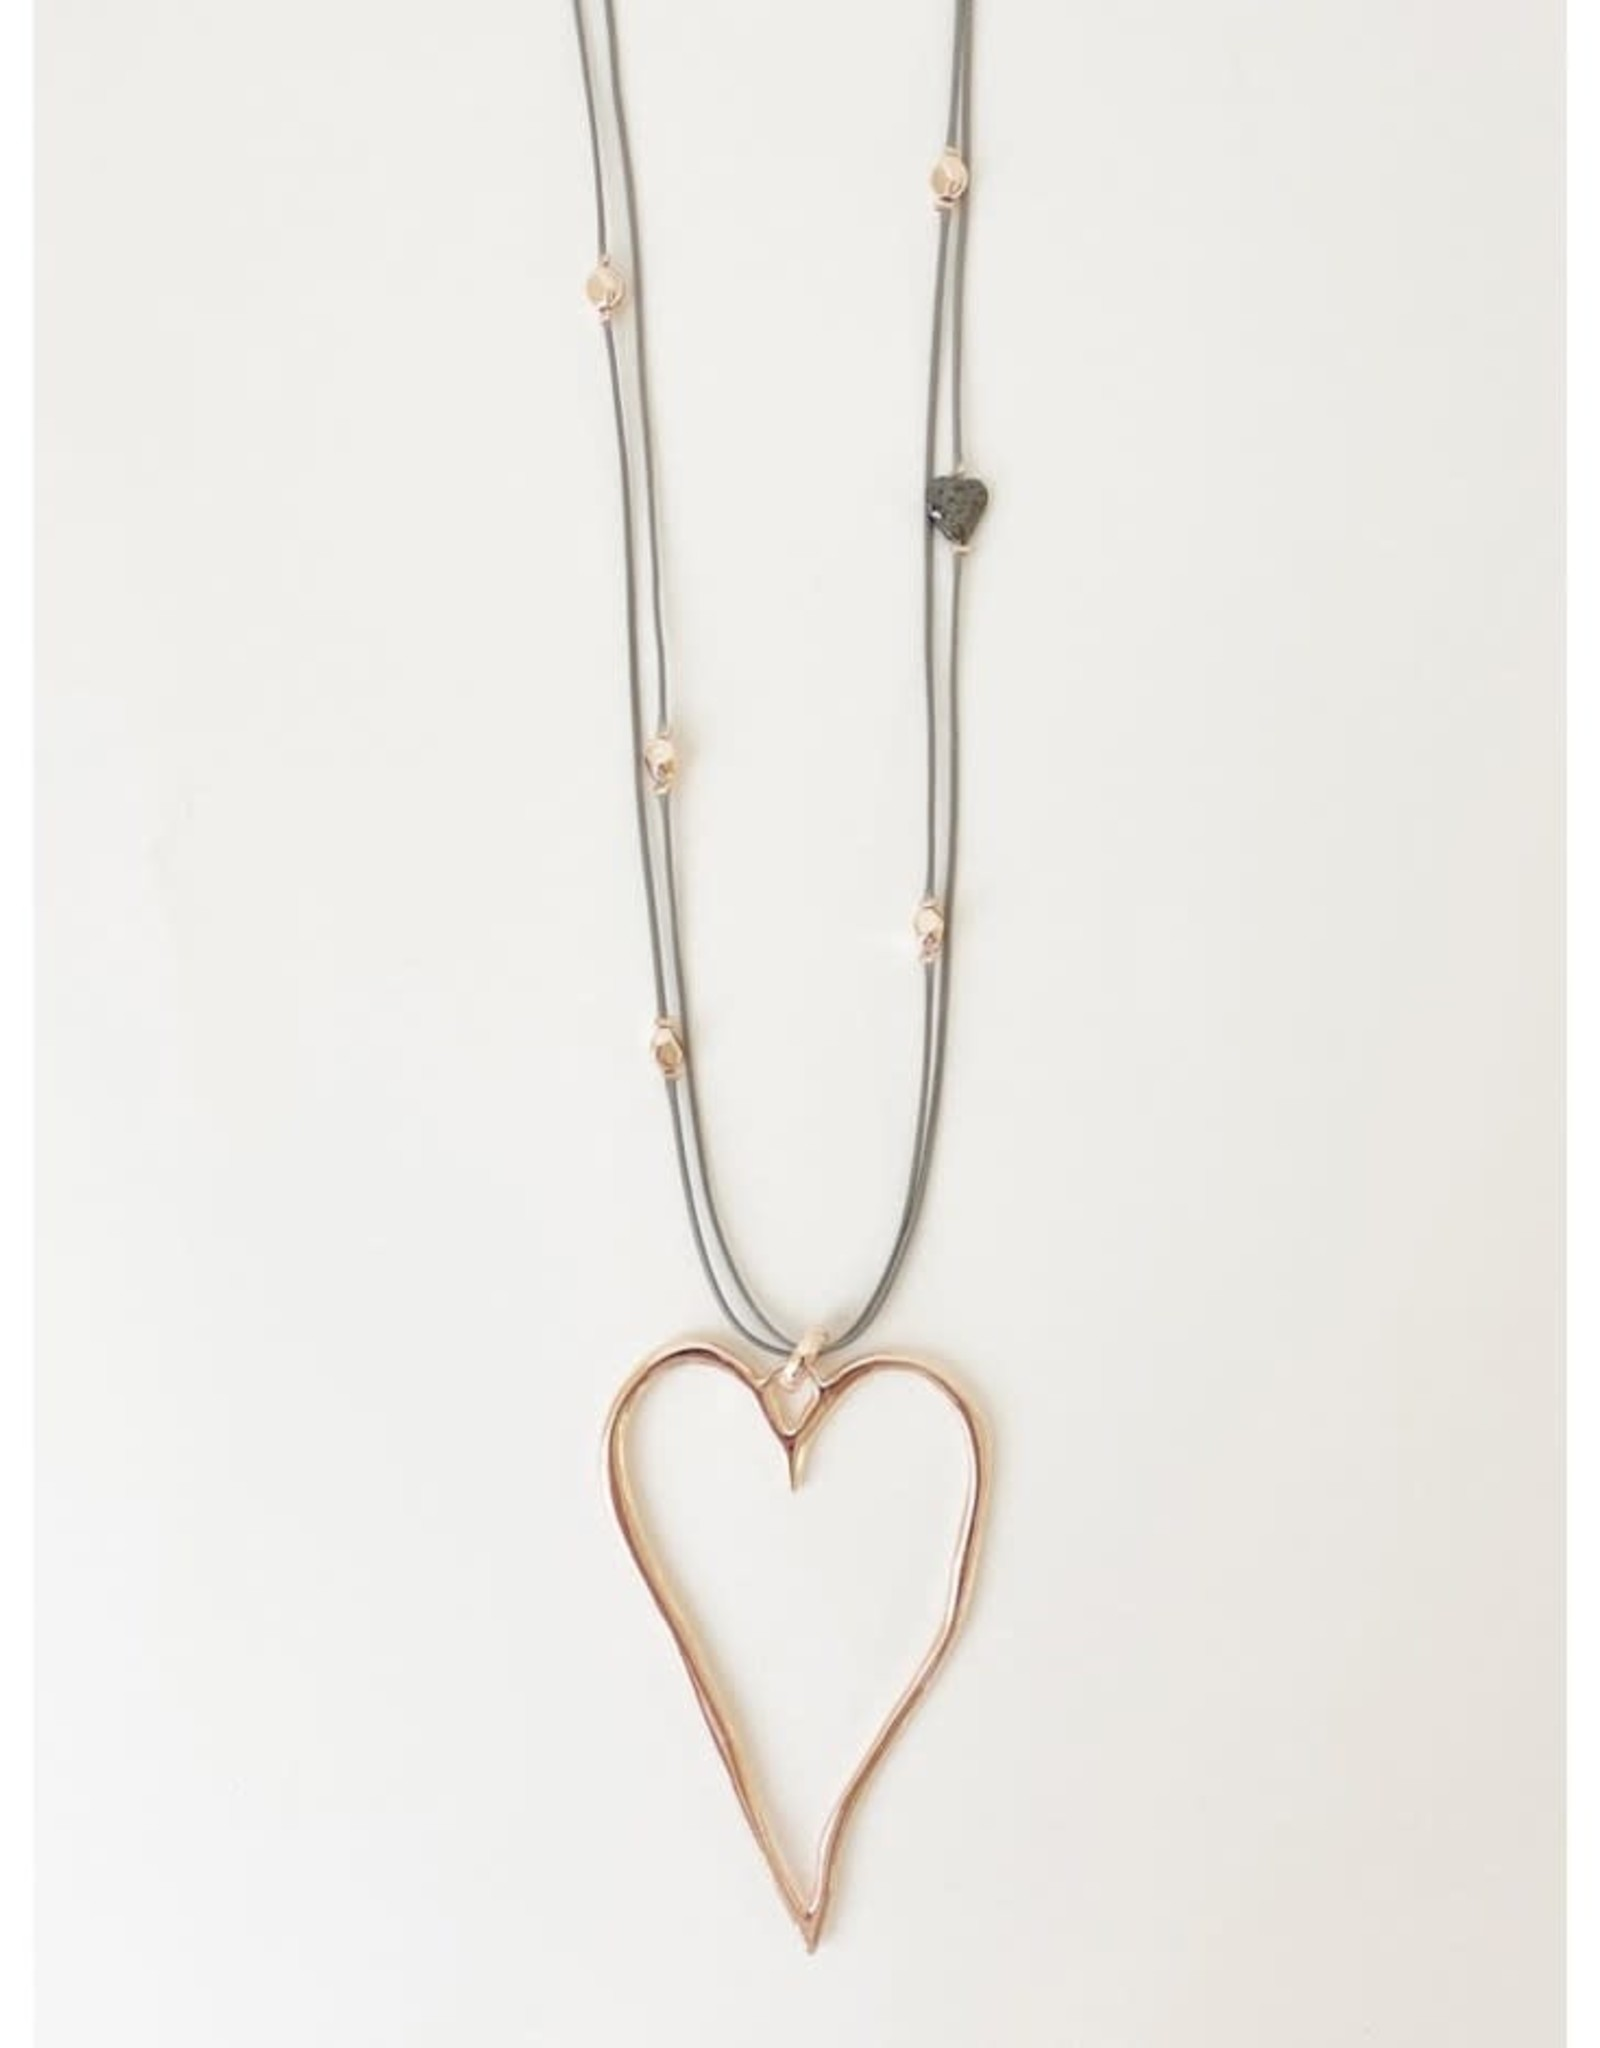 Caracol Adjustable cord necklace with large heart pendant